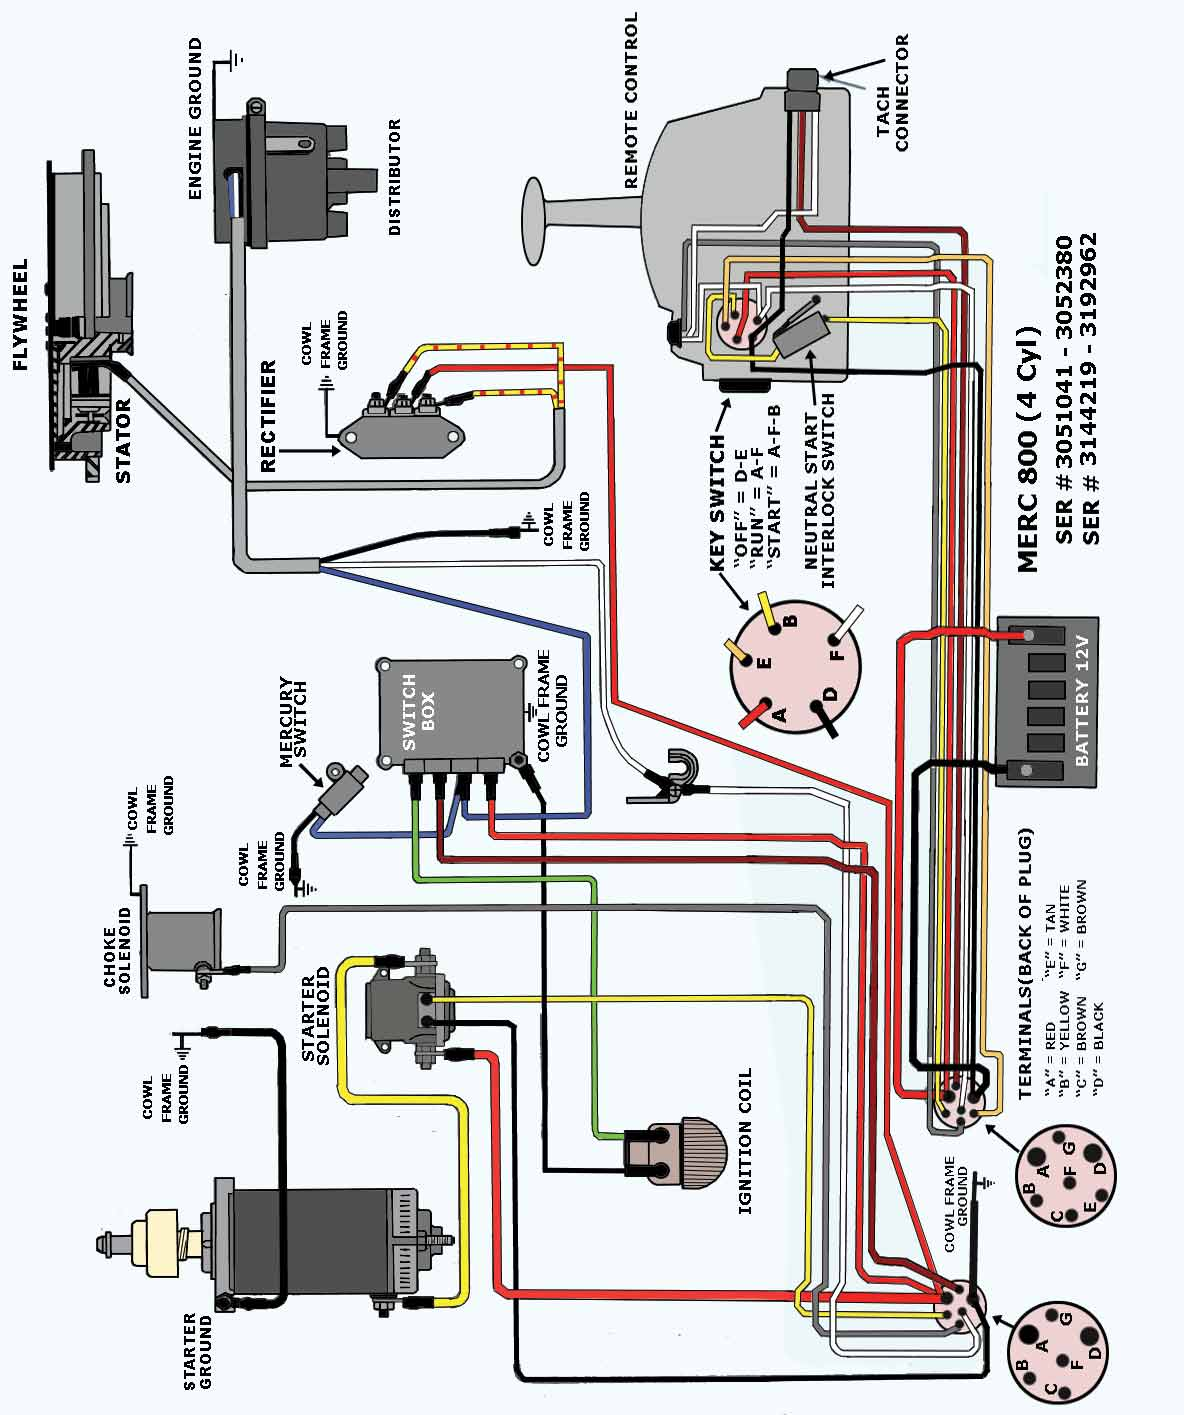 mercury outboard wiring diagrams mastertech marin rh maxrules com Fiberform Boat Wiring Diagrams thunderbolt v ignition system wiring diagram